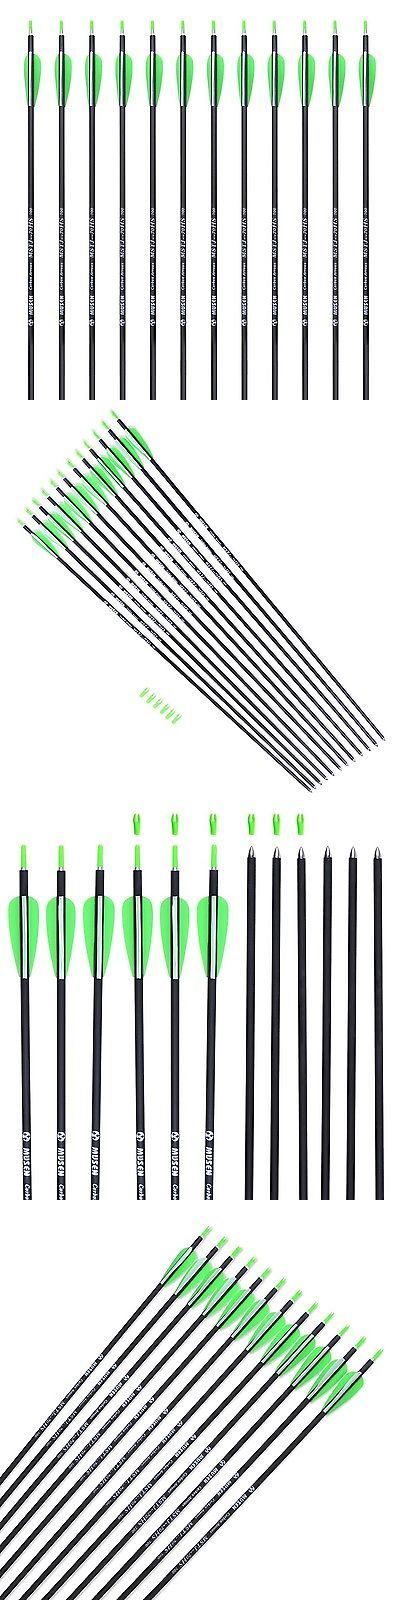 Complete Arrows 181308: Musen Carbon Arrows 30-Inch Fletching 2.5 Target Practice Archery Arrows Fo... -> BUY IT NOW ONLY: $31 on eBay!